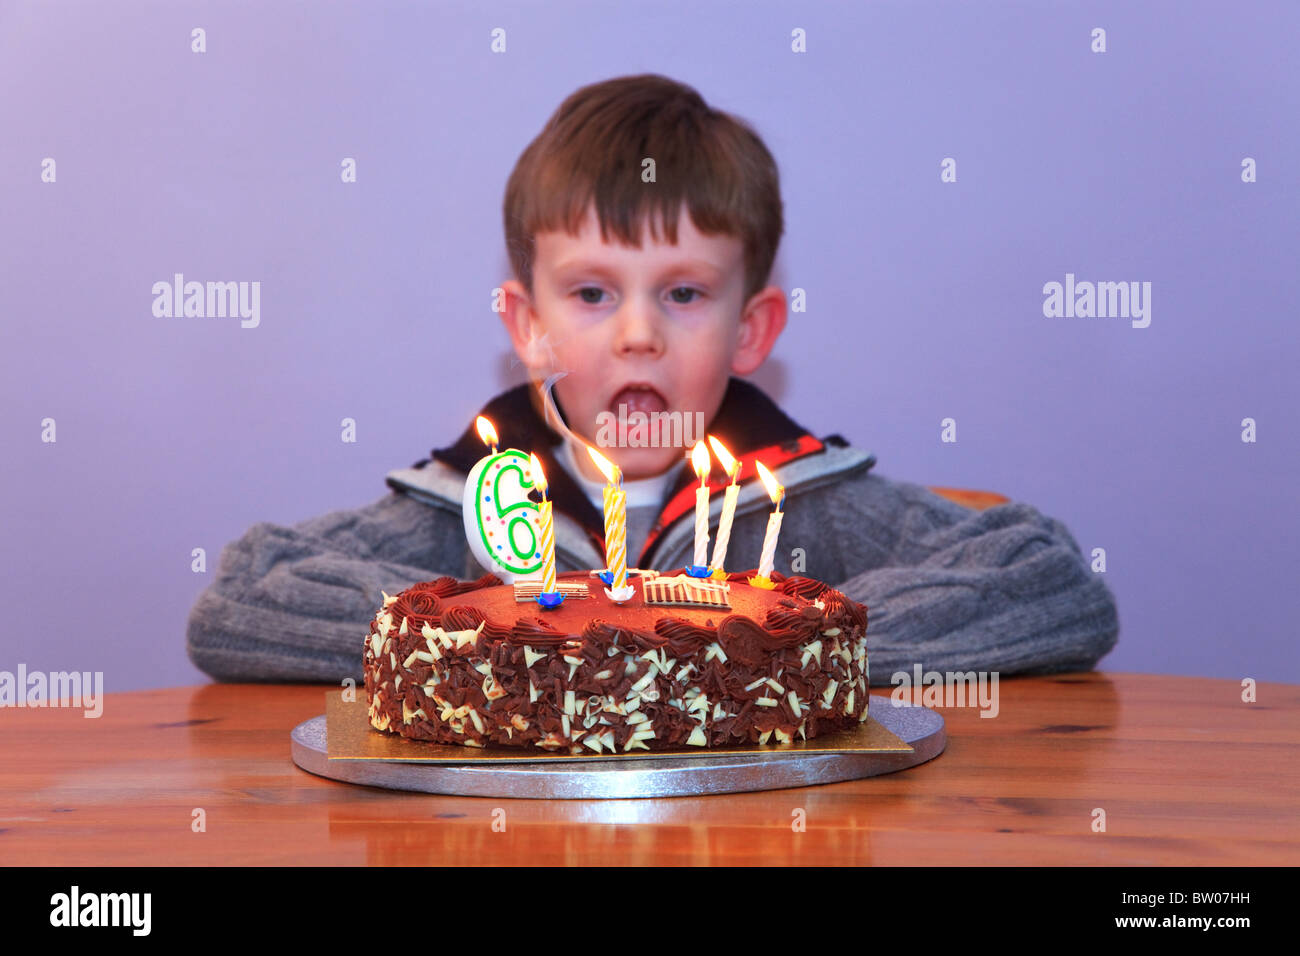 A 6 Year Old Boy Looking At The Candles On His Birthday Cake